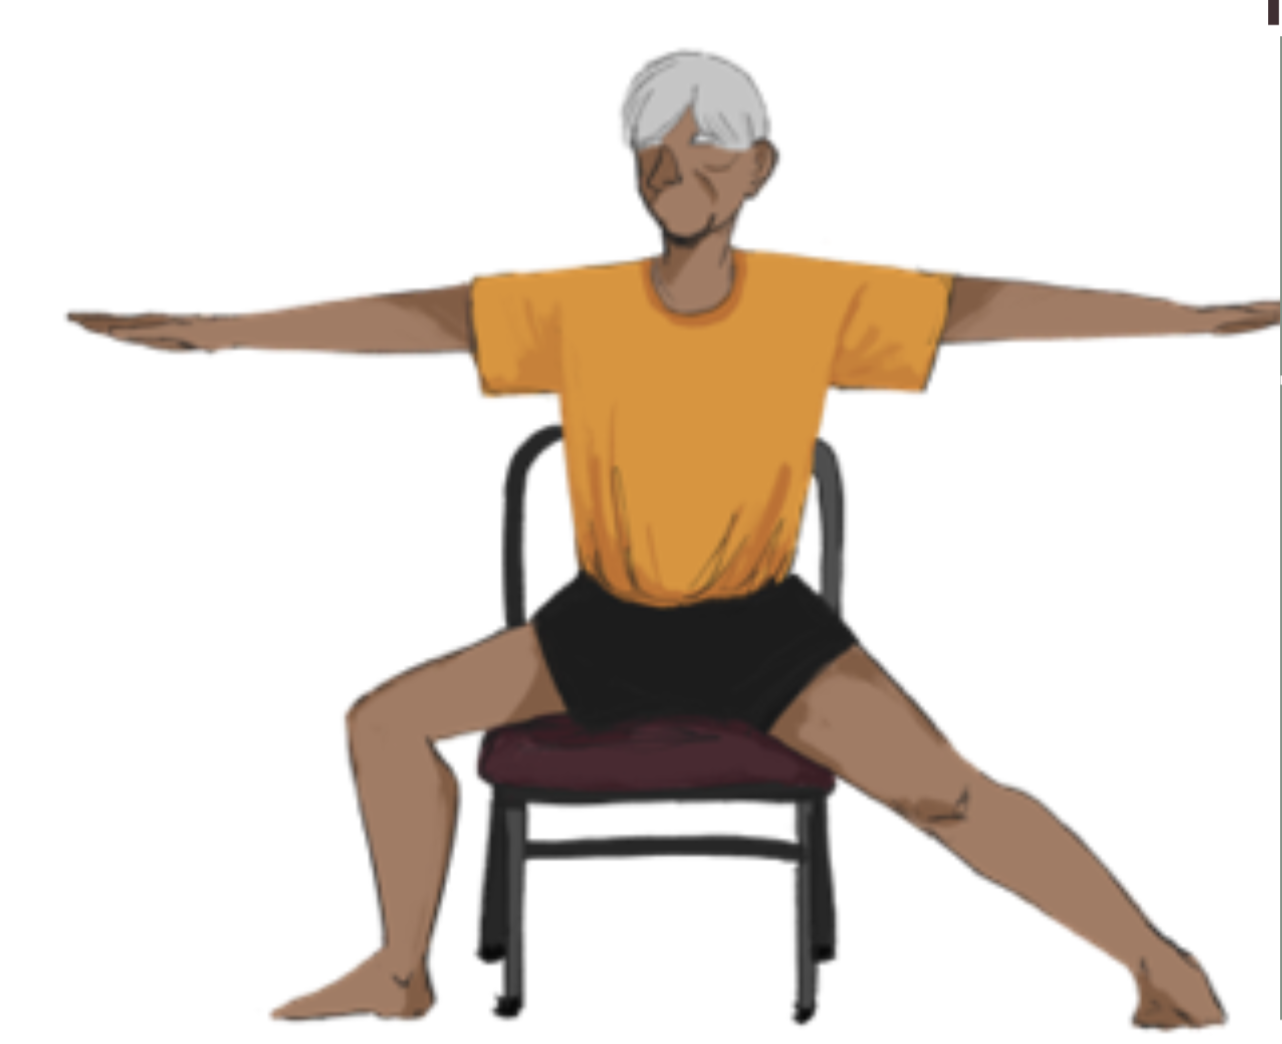 Iyengar Yoga is for All: A Senior's Story